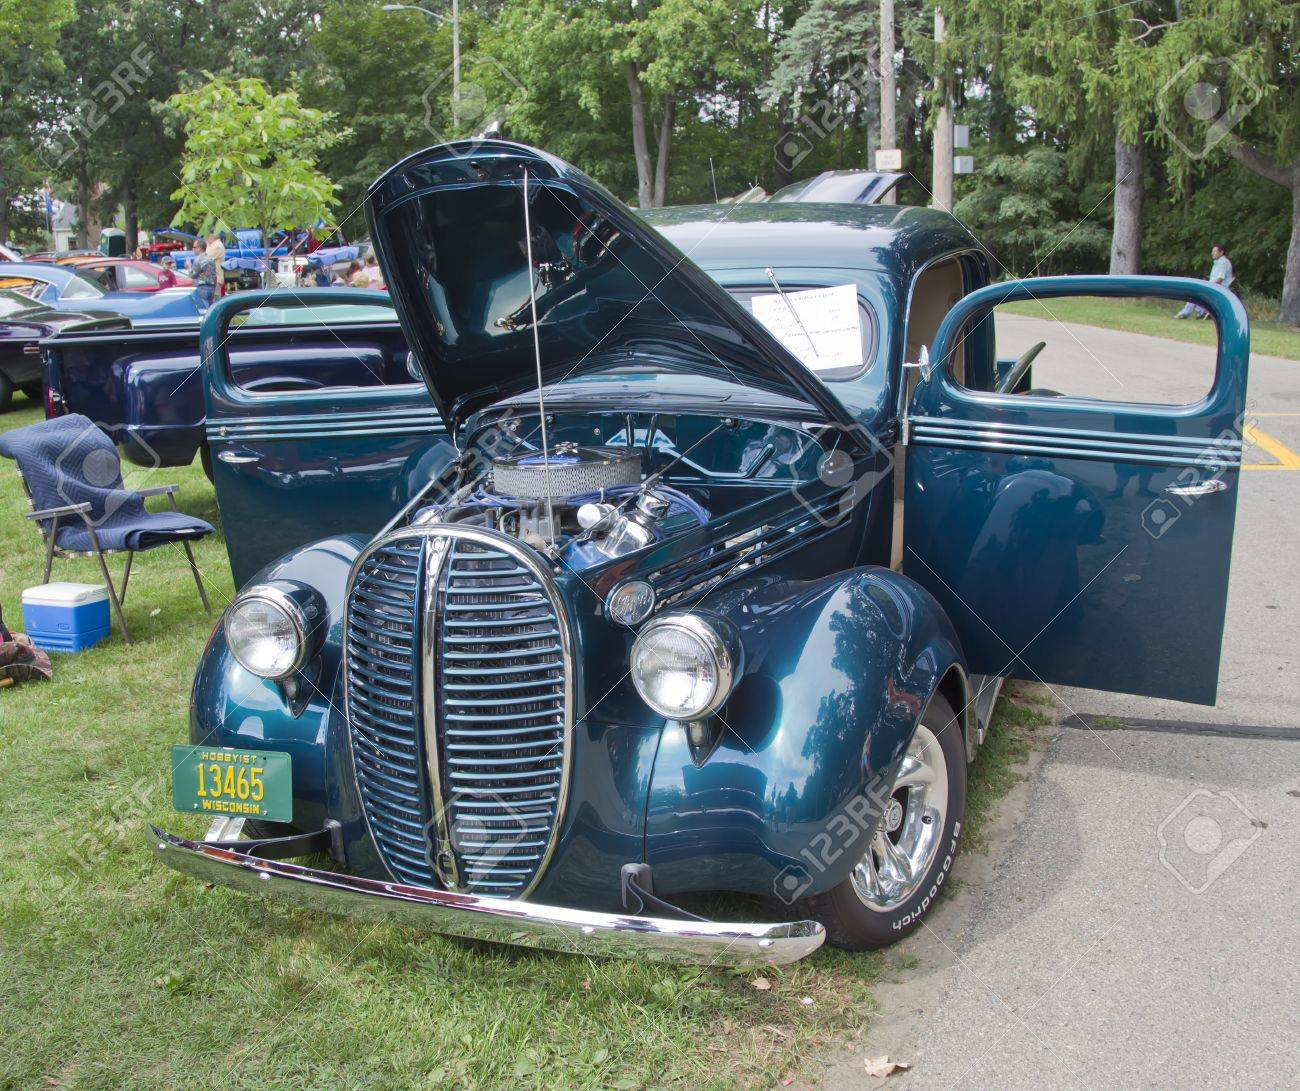 Waupaca Wi August 25 1938 Ford Pickup Truck At The 10th Annual 1955 F100 Vector Stock Photo Rod Classic Car Club Show On 2012 In